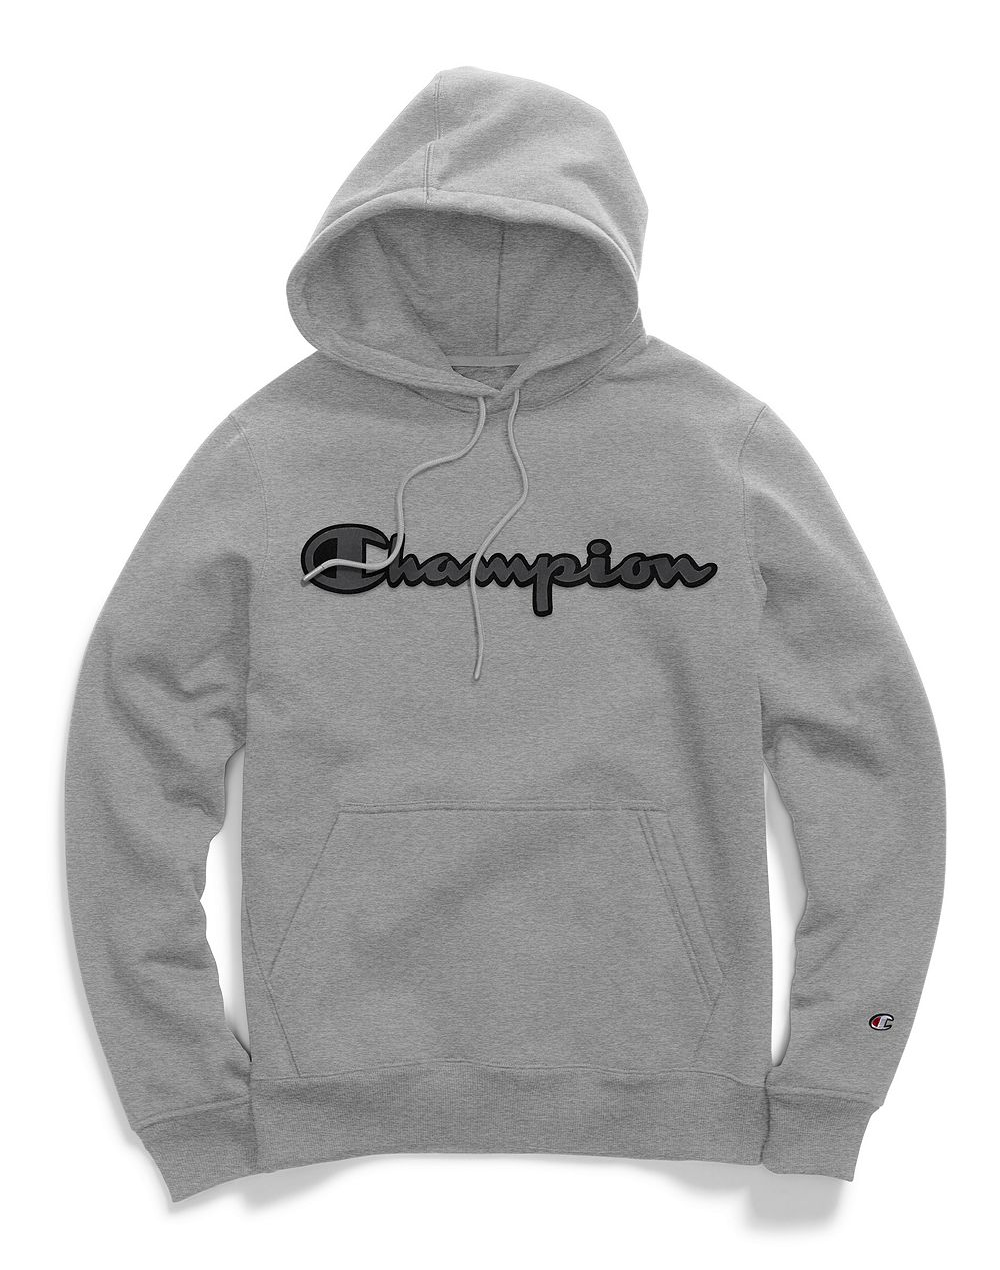 Champion hoodie - gift ideas for teens